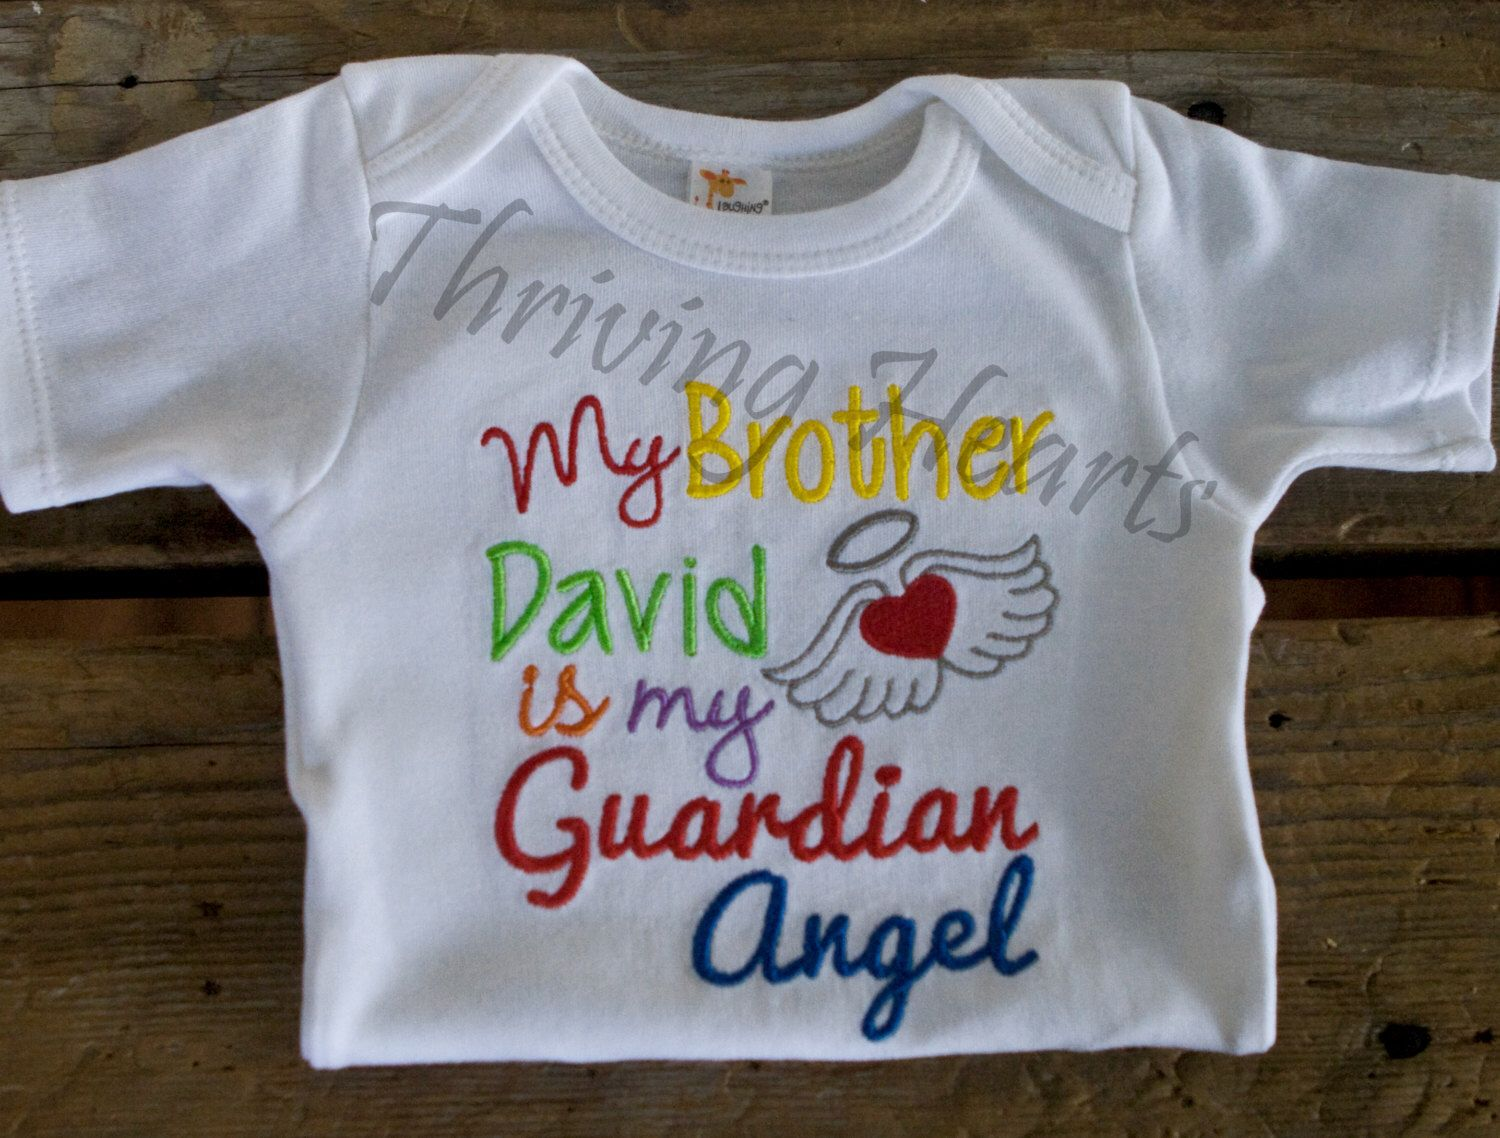 My brother is my guardian angel. Rainbow baby onesie.